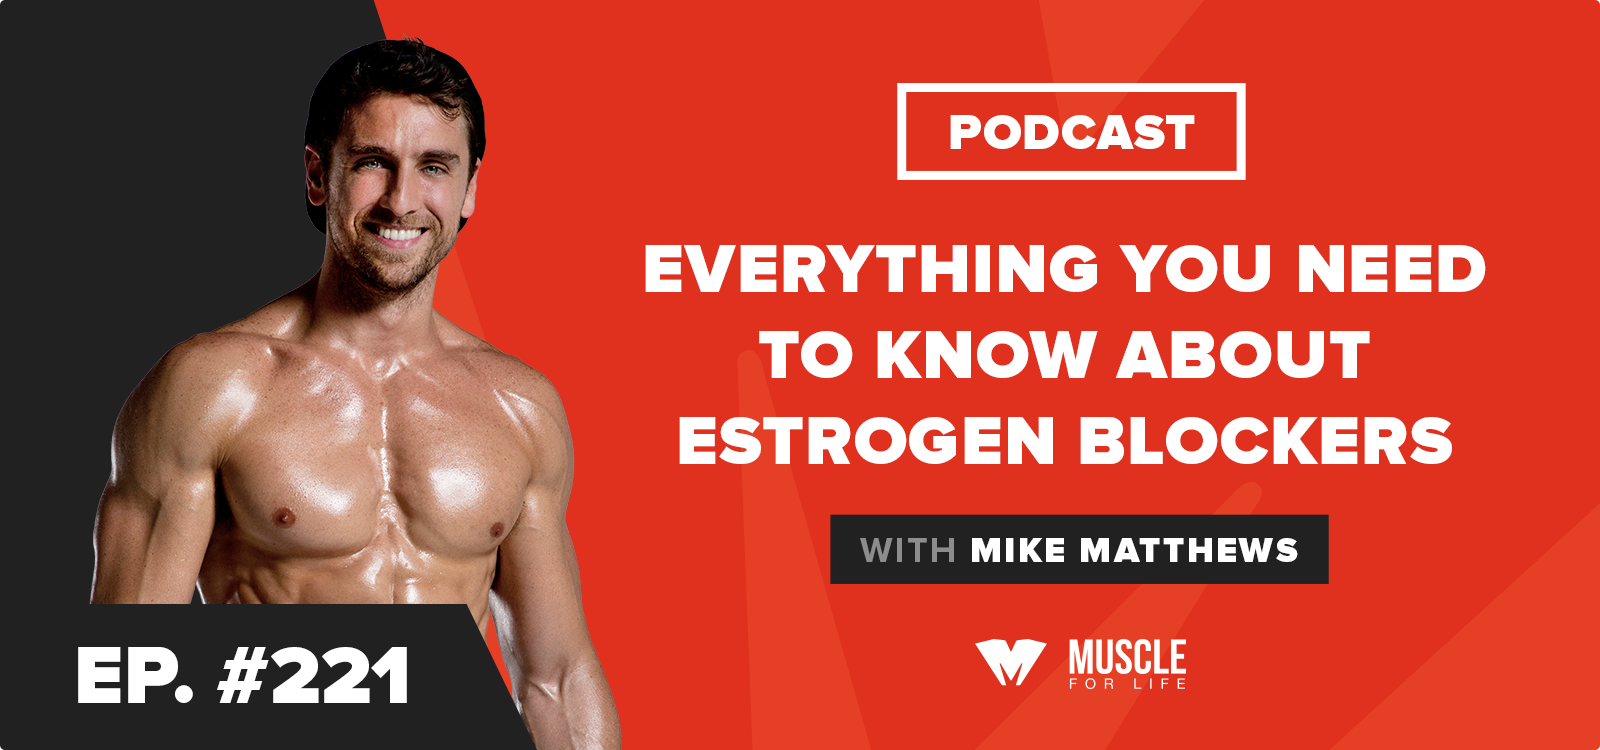 Everything You Need to Know About Estrogen Blockers